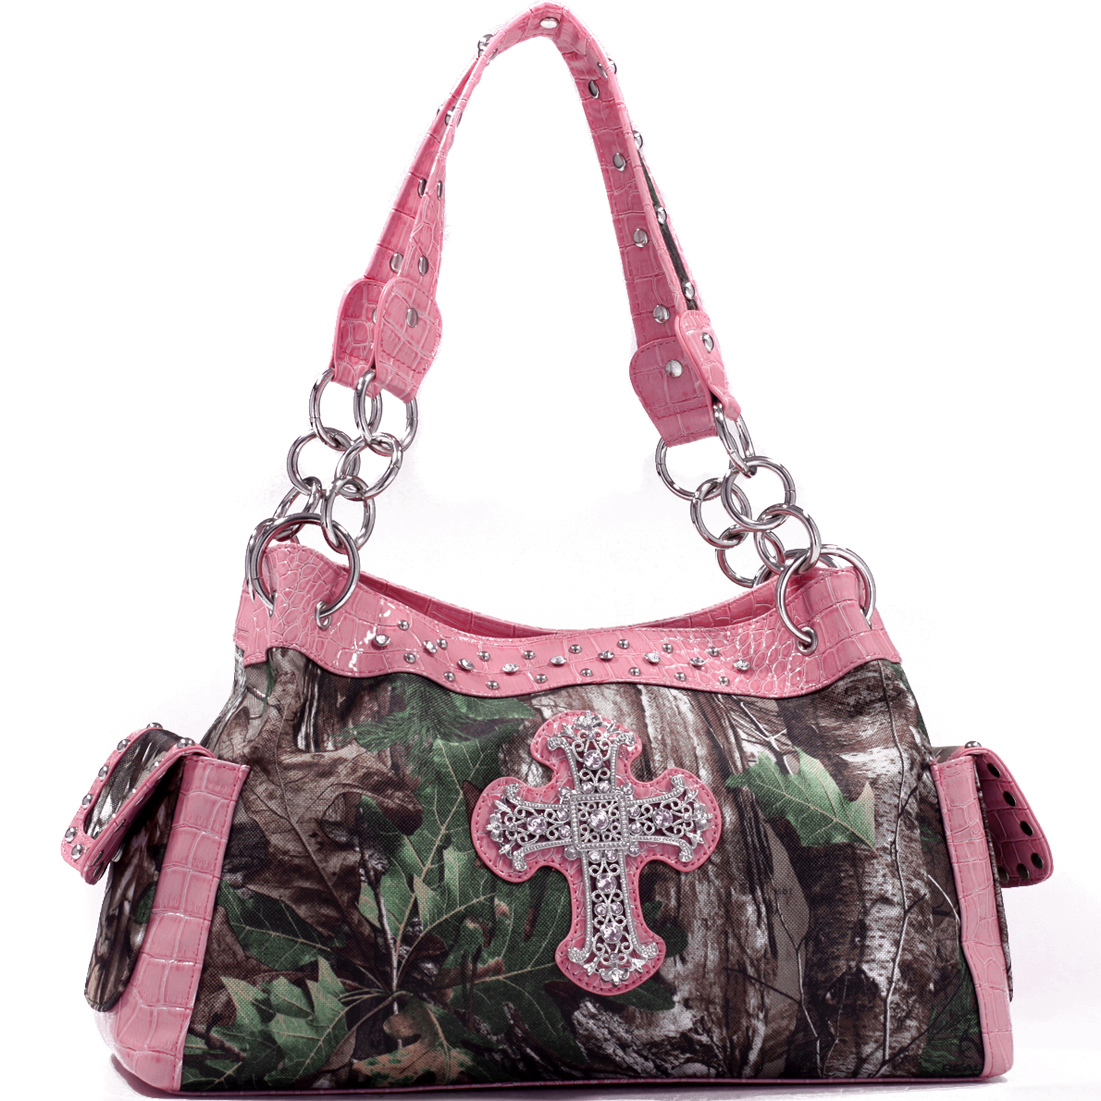 Realtree® Camouflage Shoulder Bag with Rhinestone Cross - Pink Camouflage/Pink